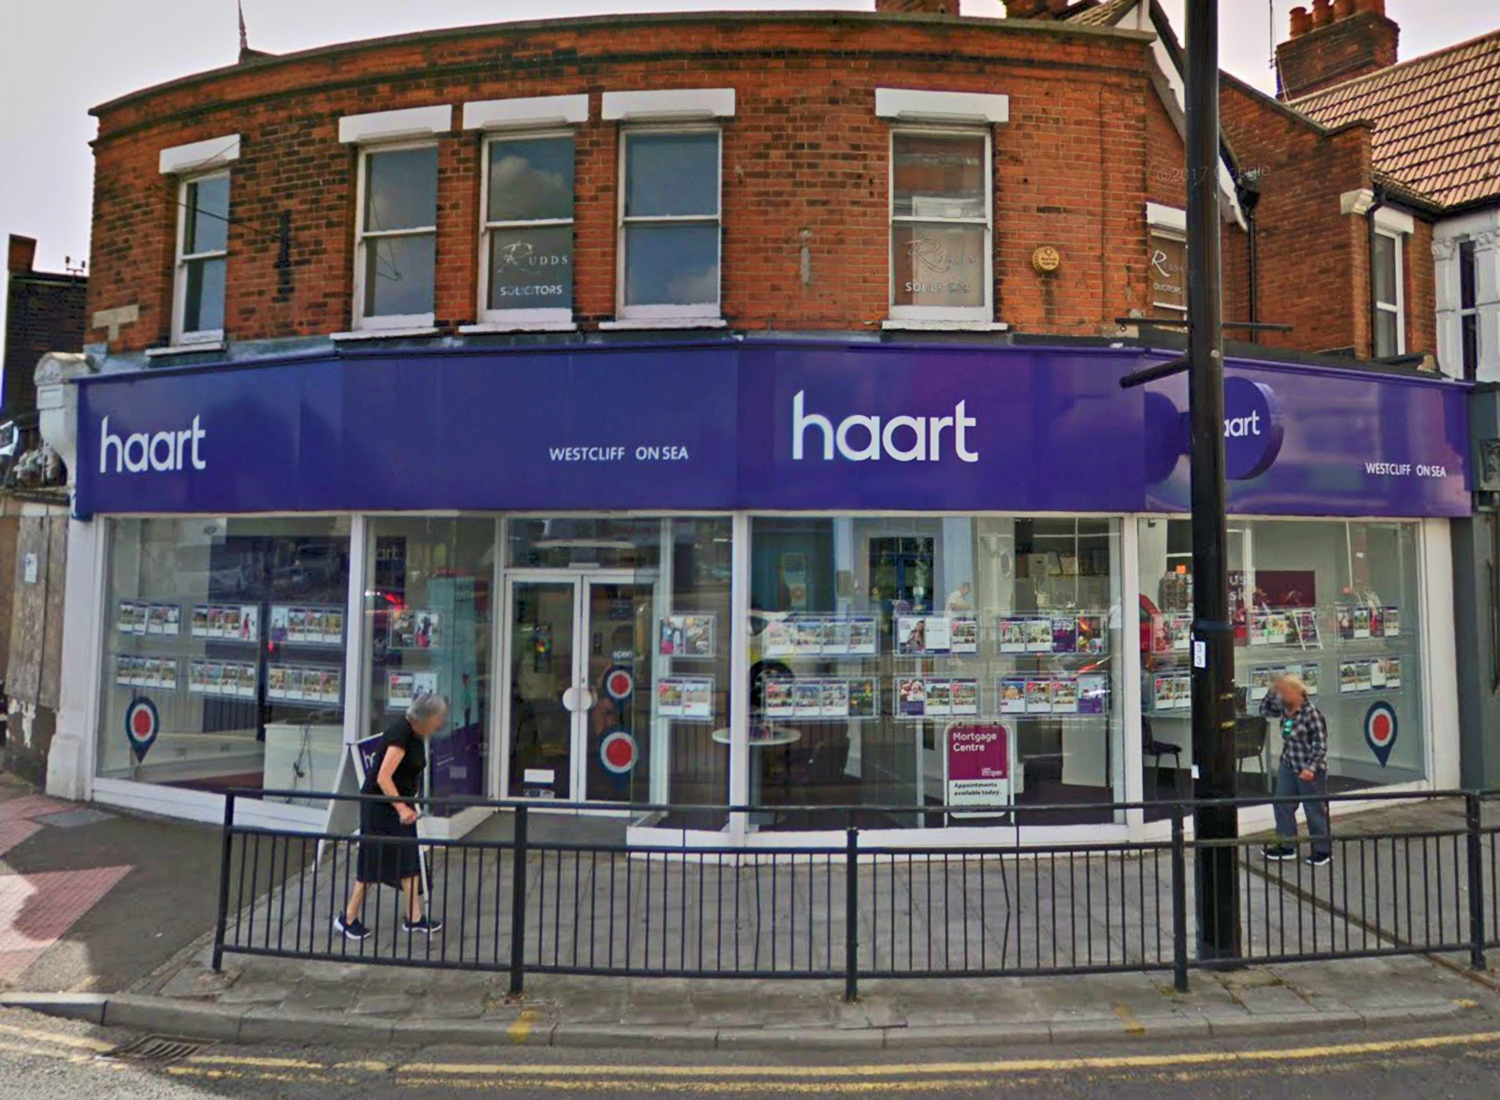 haart estate agents Westcliff on Sea - Westcliff-on-Sea, Essex SS0 7LJ - 01702 342193 | ShowMeLocal.com